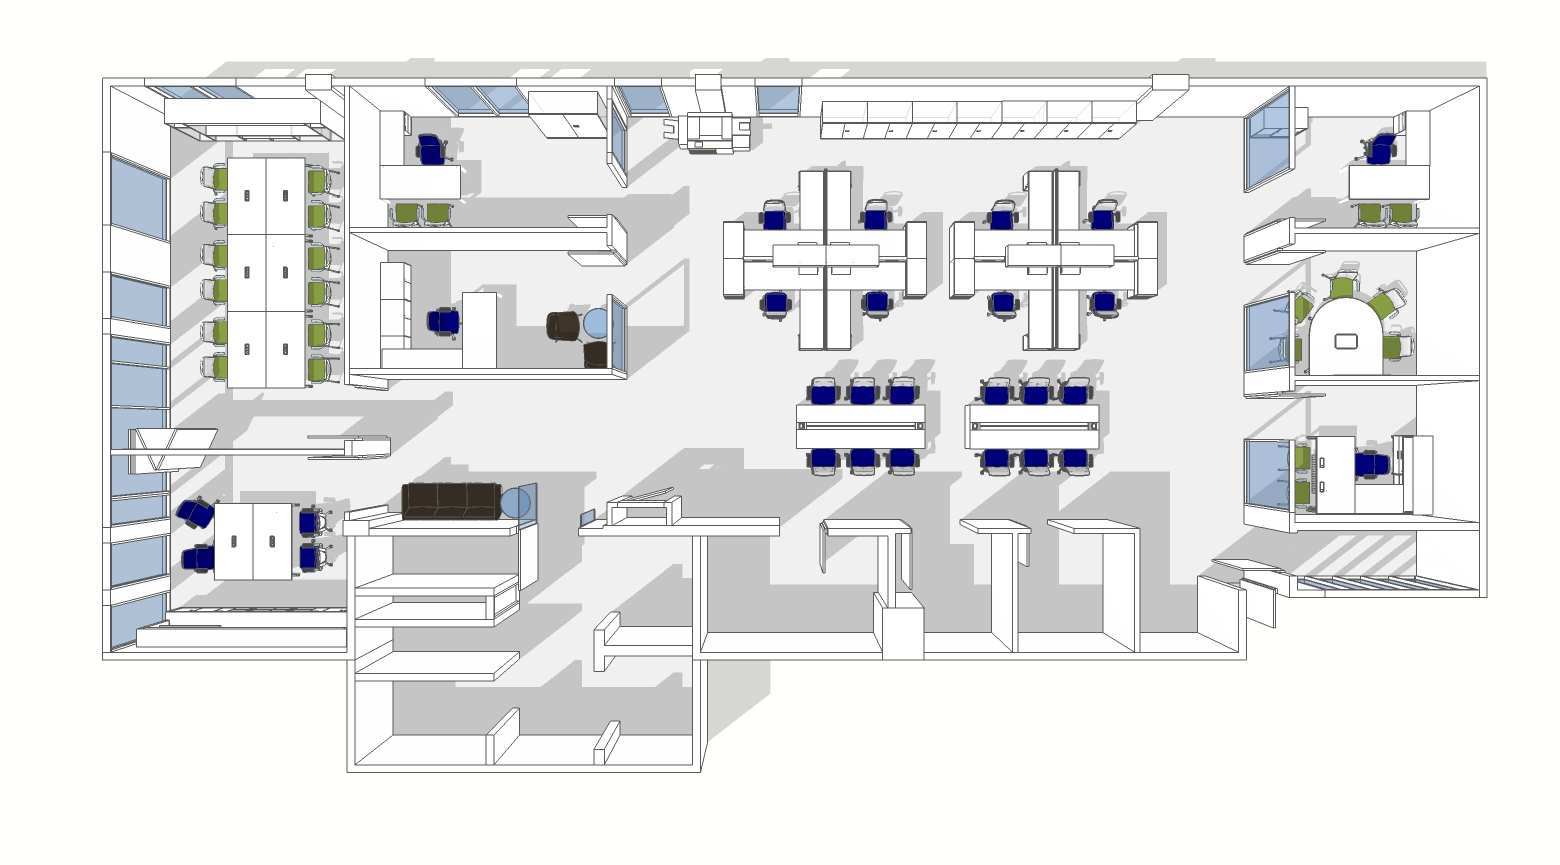 Ferring Pharmaceuticals Proposal Layout Plan_R6_TOP